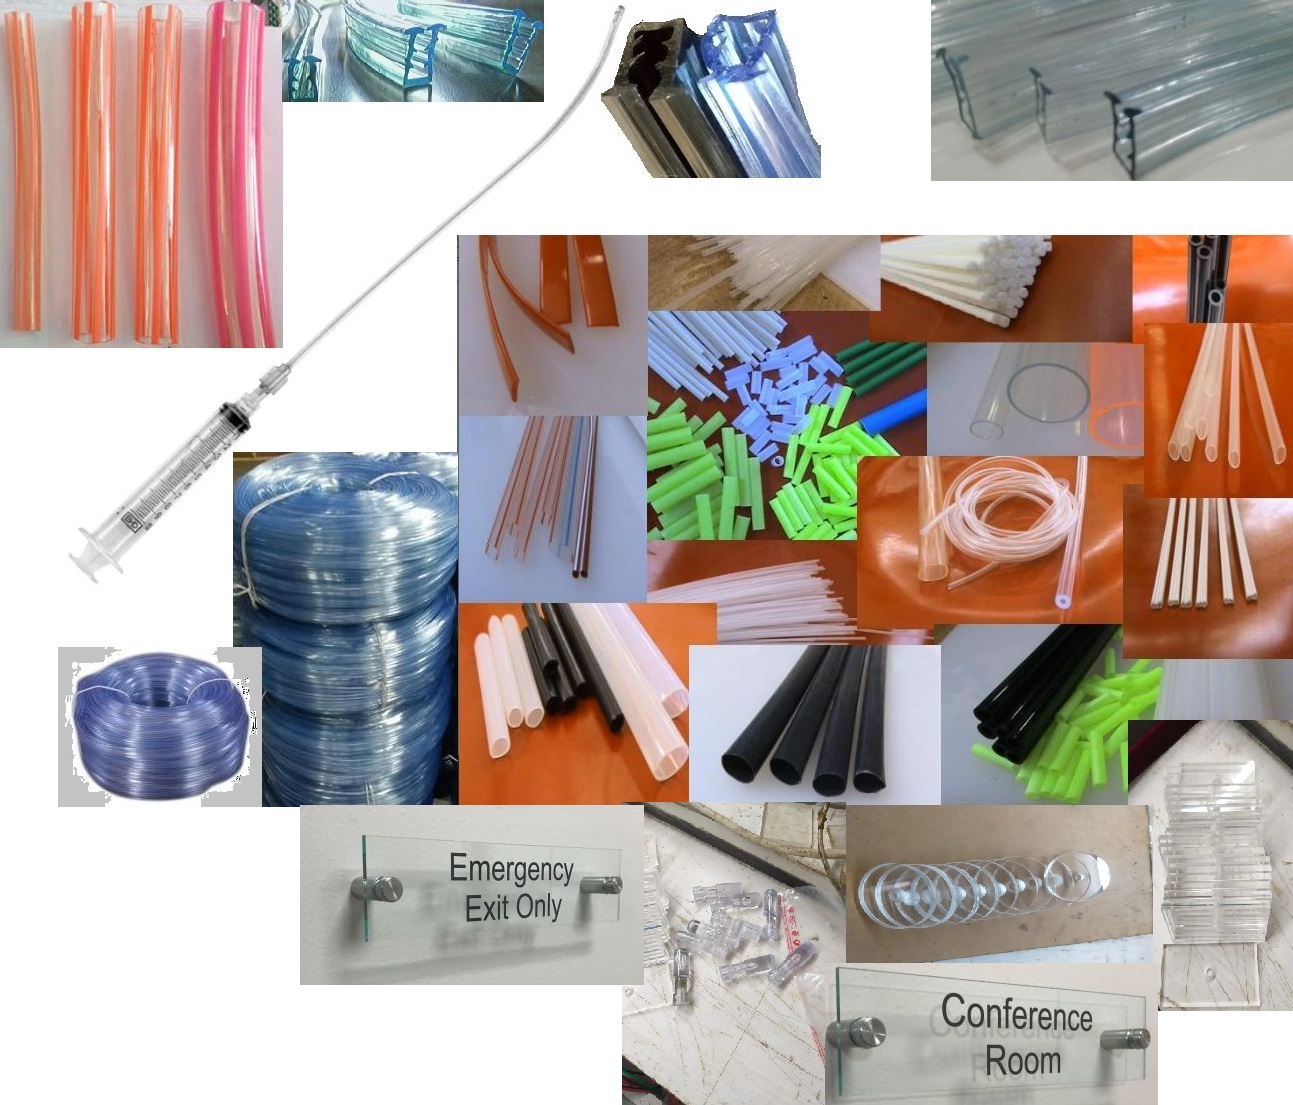 Extrusion items - Pipes, Tubes, Stirrers, Cotton buds sticks, Cannula, Catheters